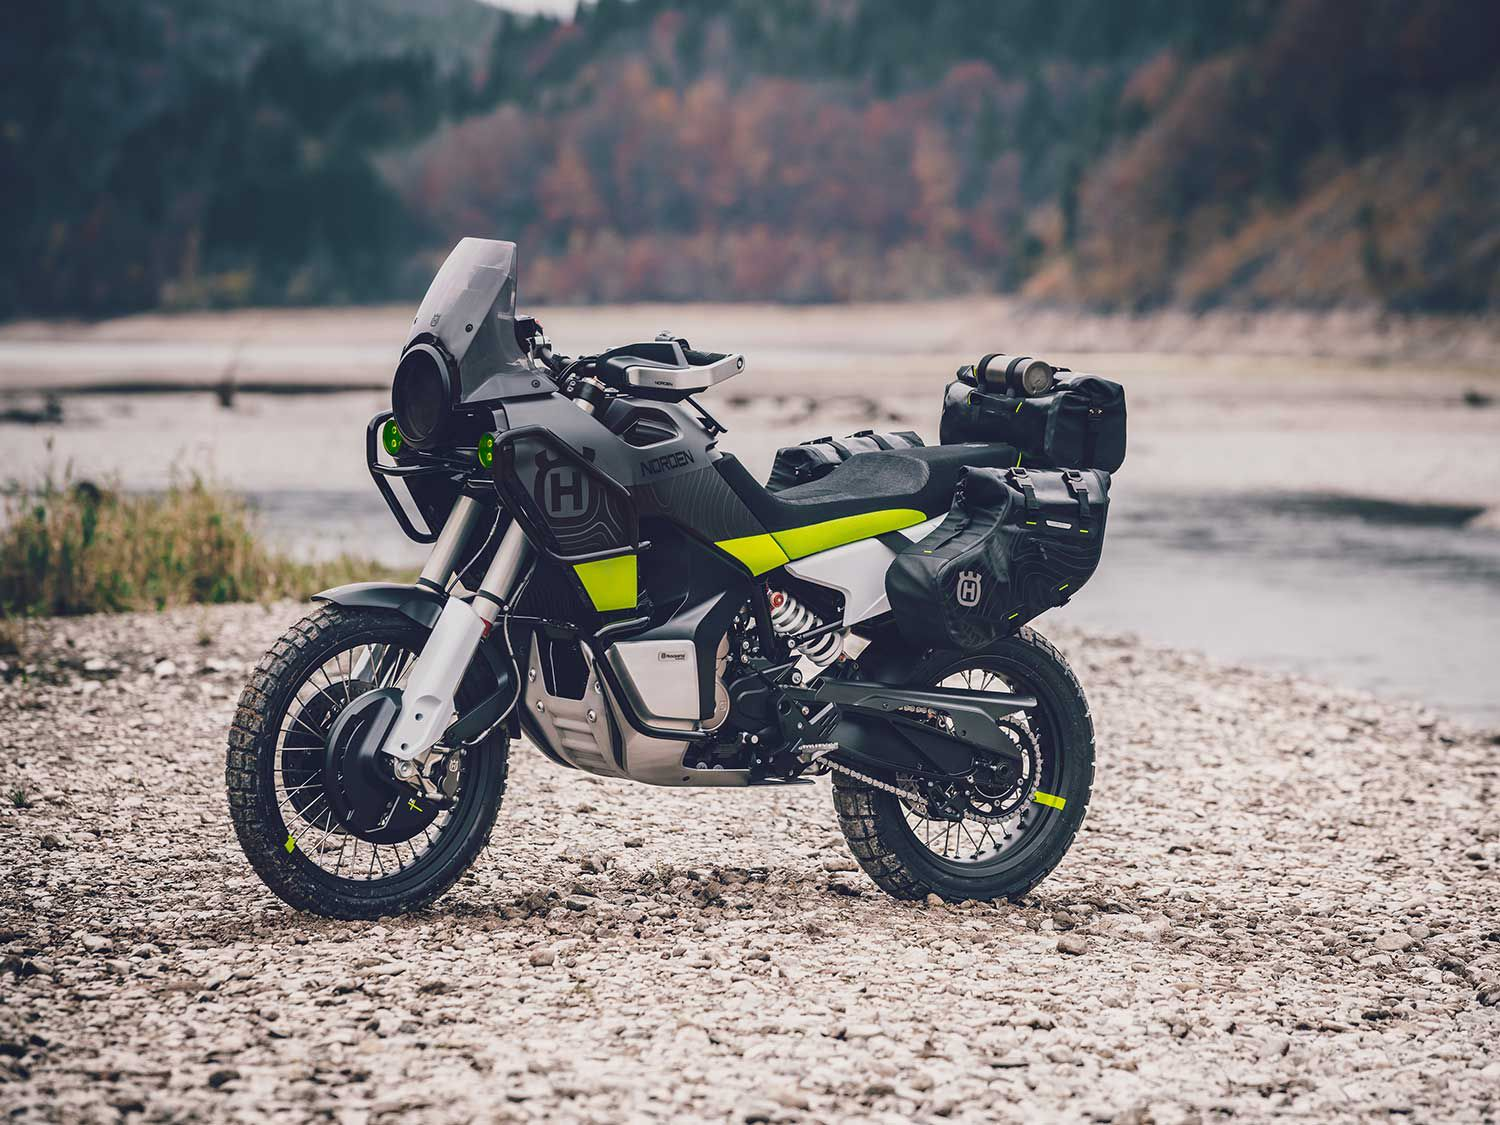 WP suspension and off-road-biased design suggest a thoroughly capable adventurer.